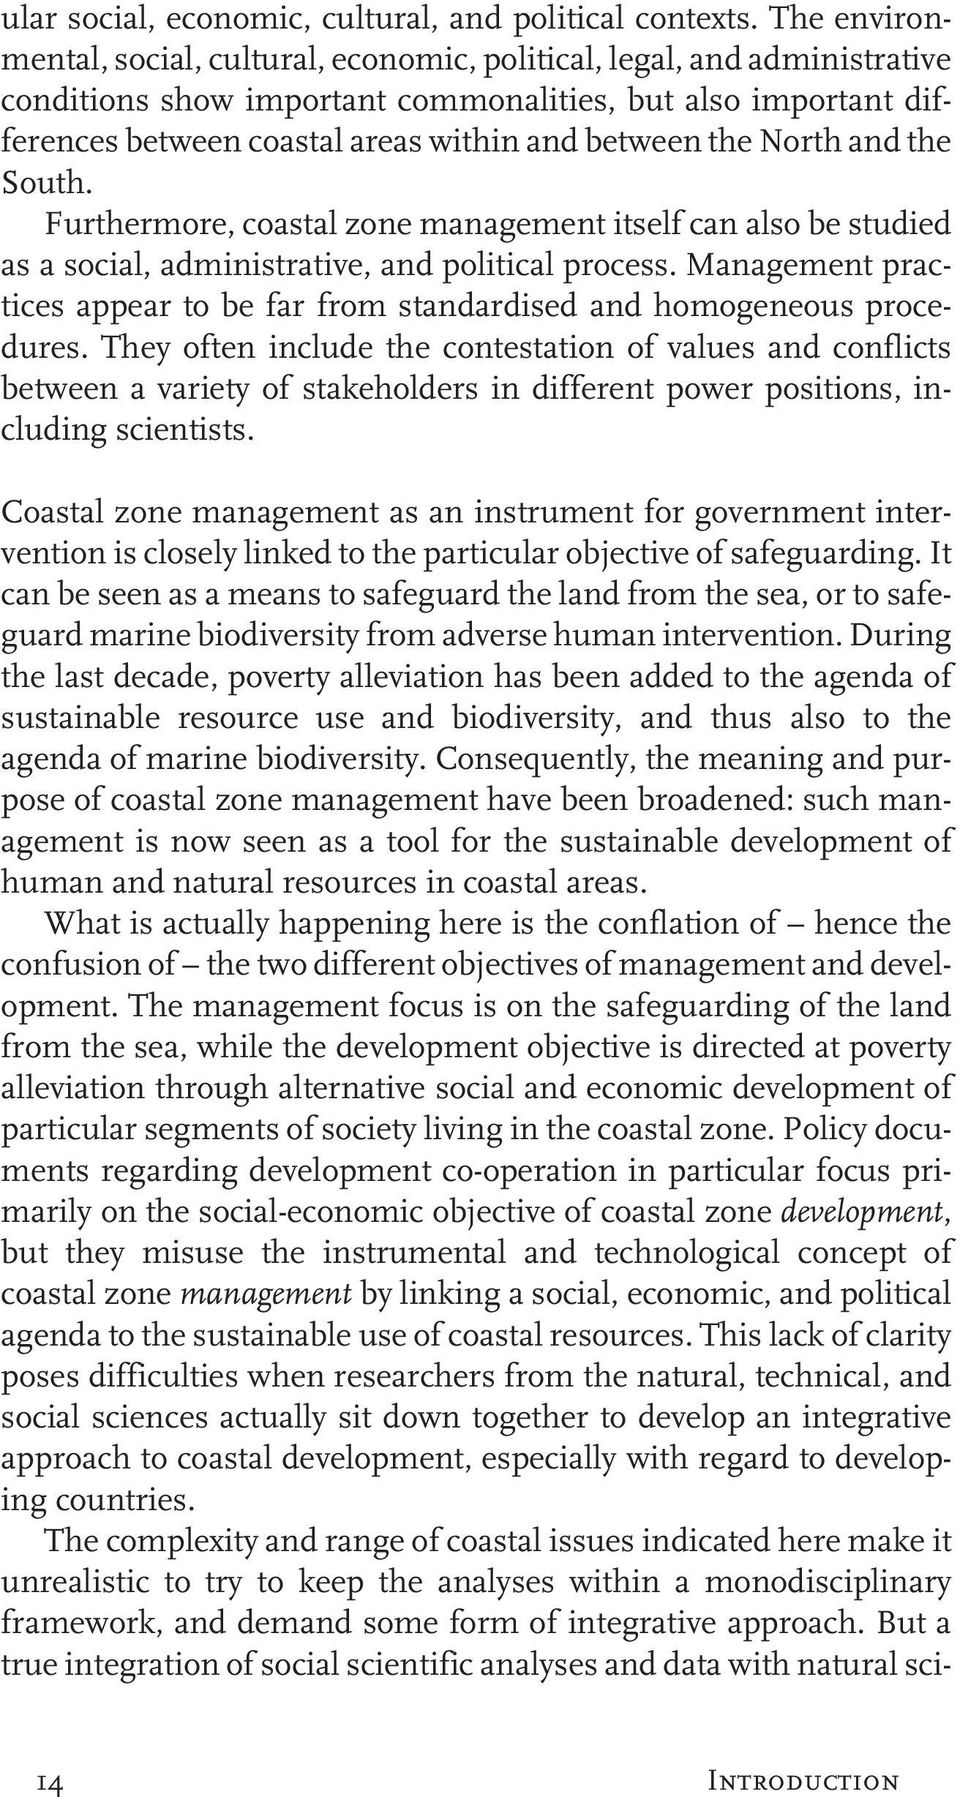 the North and the South. Furthermore, coastal zone management itself can also be studied as a social, administrative, and political process.